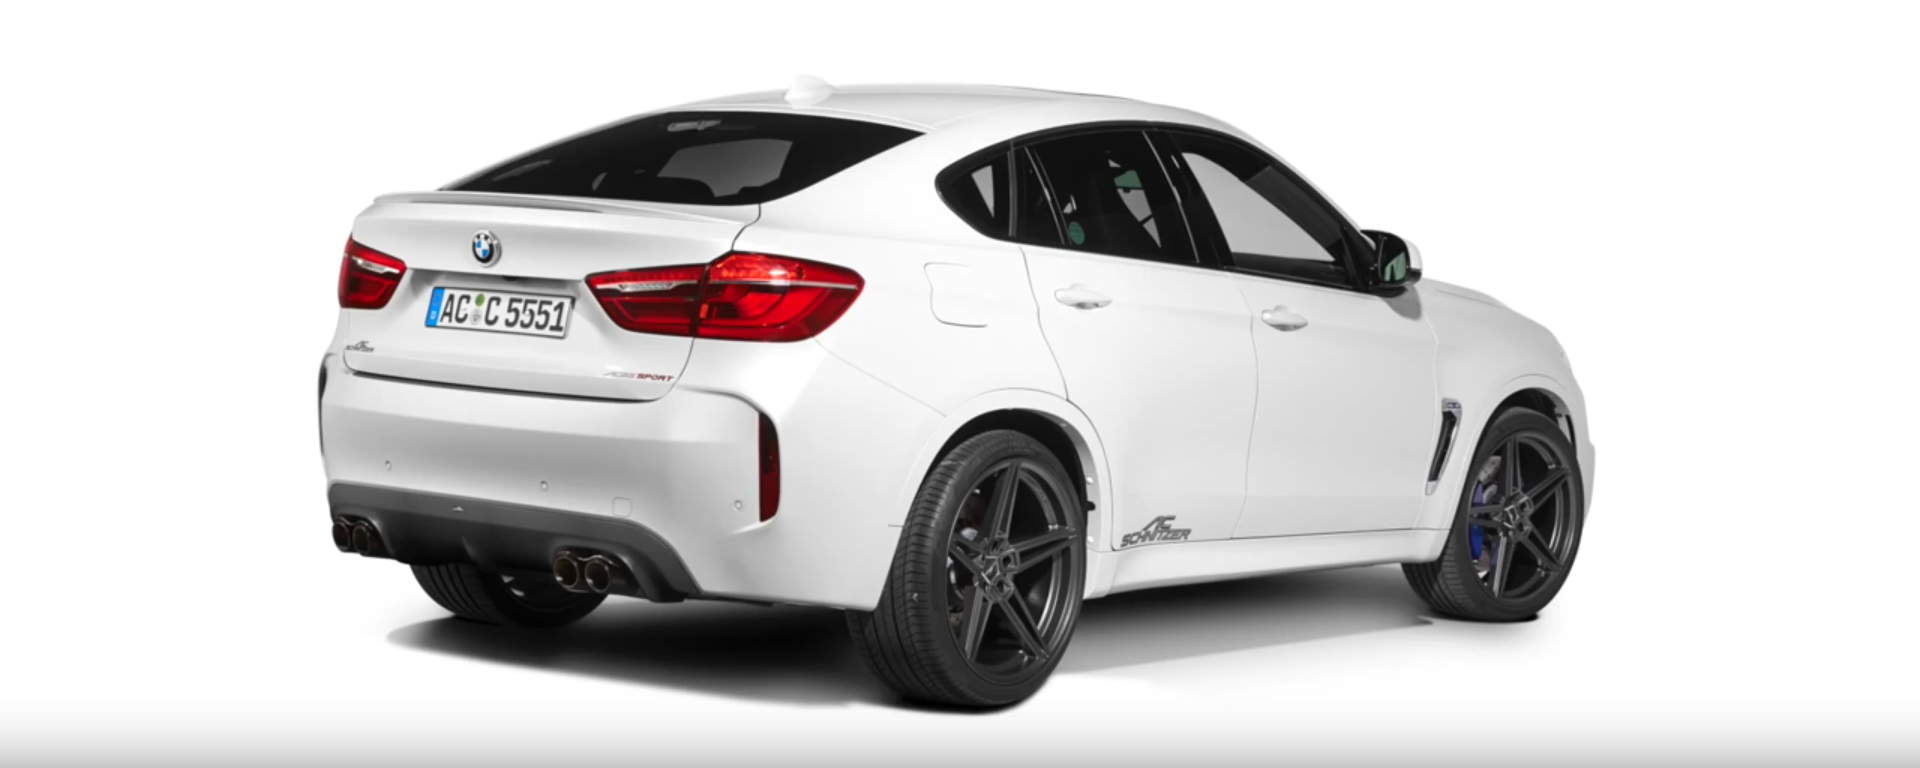 Ac Schnitzer Launches New Final Silencer For Bmw X6 M That Sounds